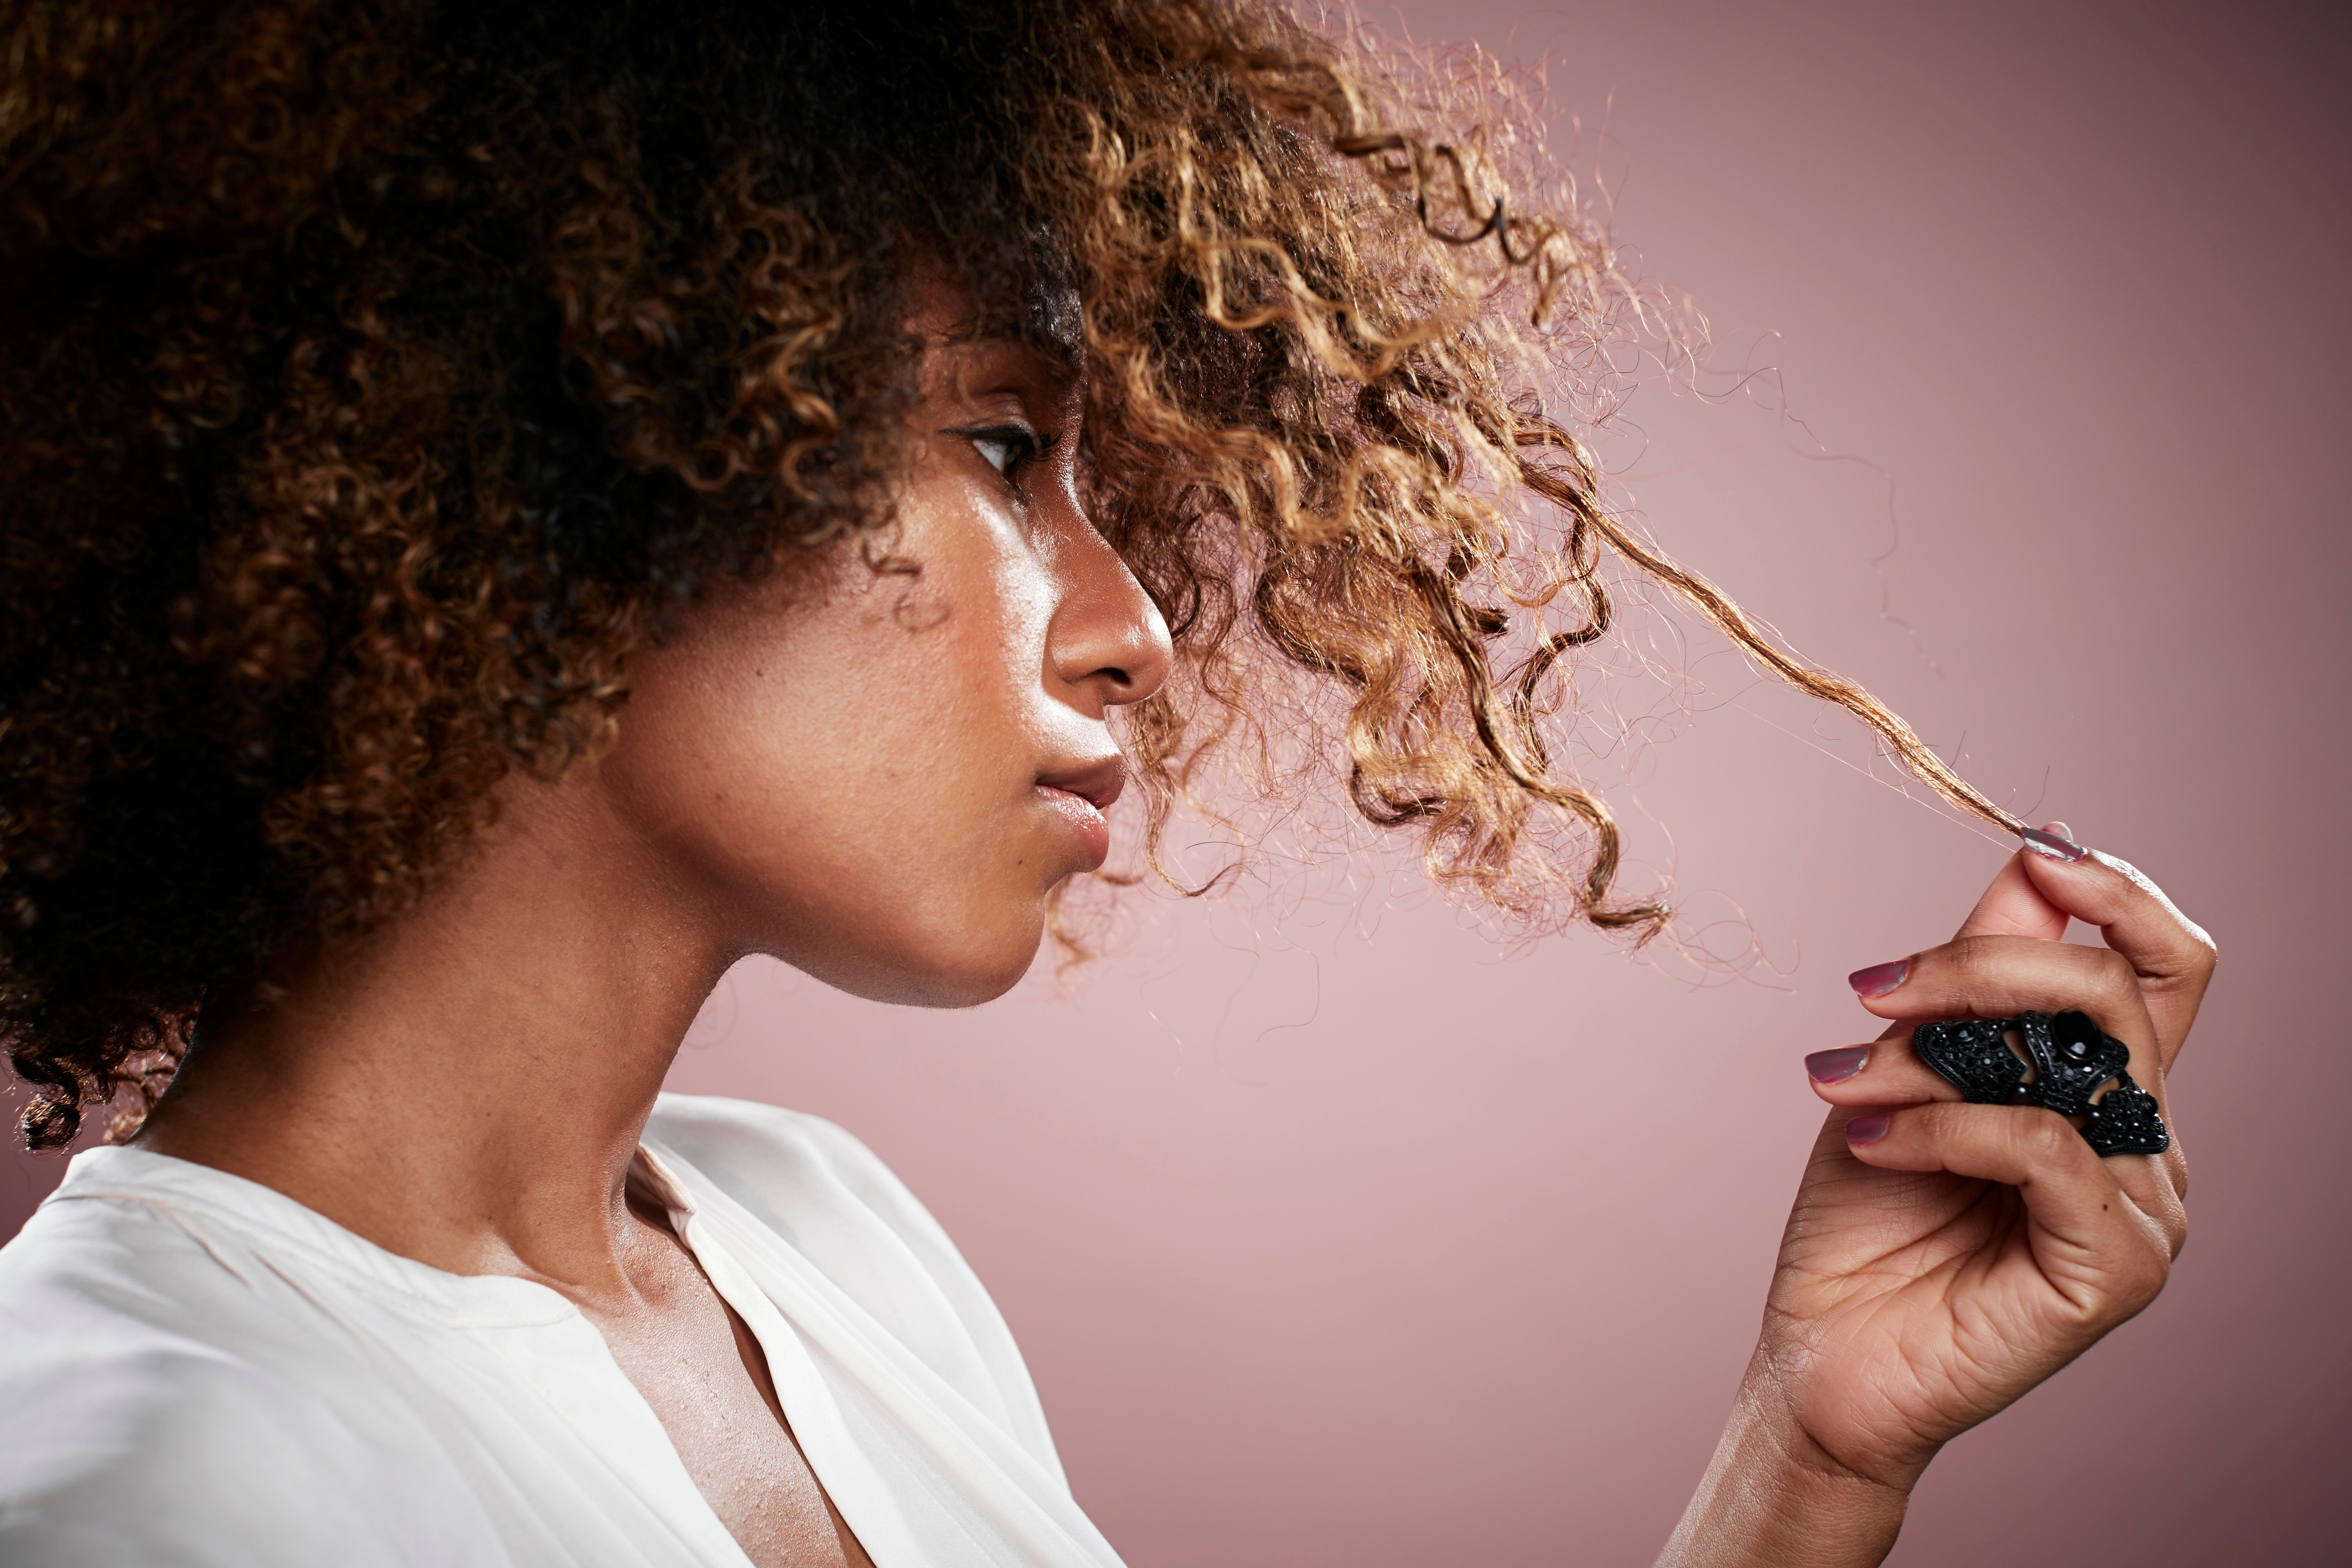 Portrait of young woman pulling on strand of curly hair